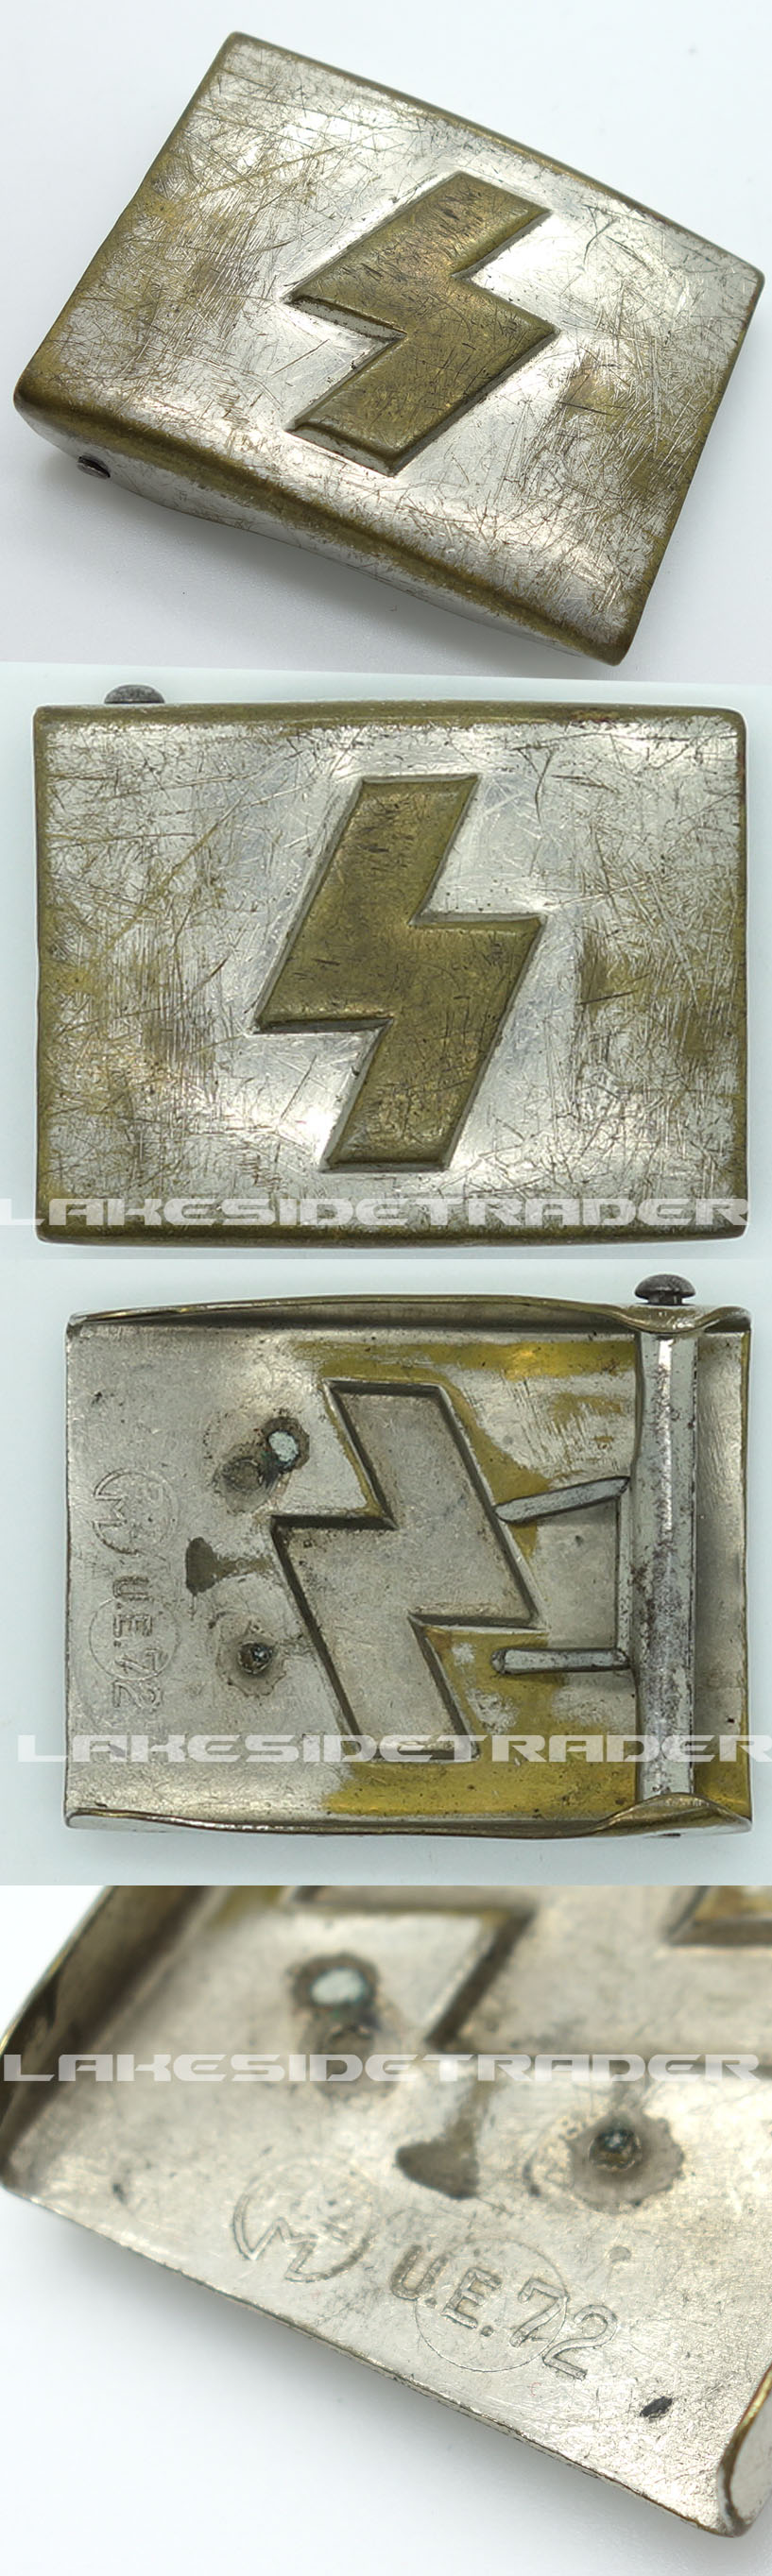 DJ Belt Buckle by Petz & Koch